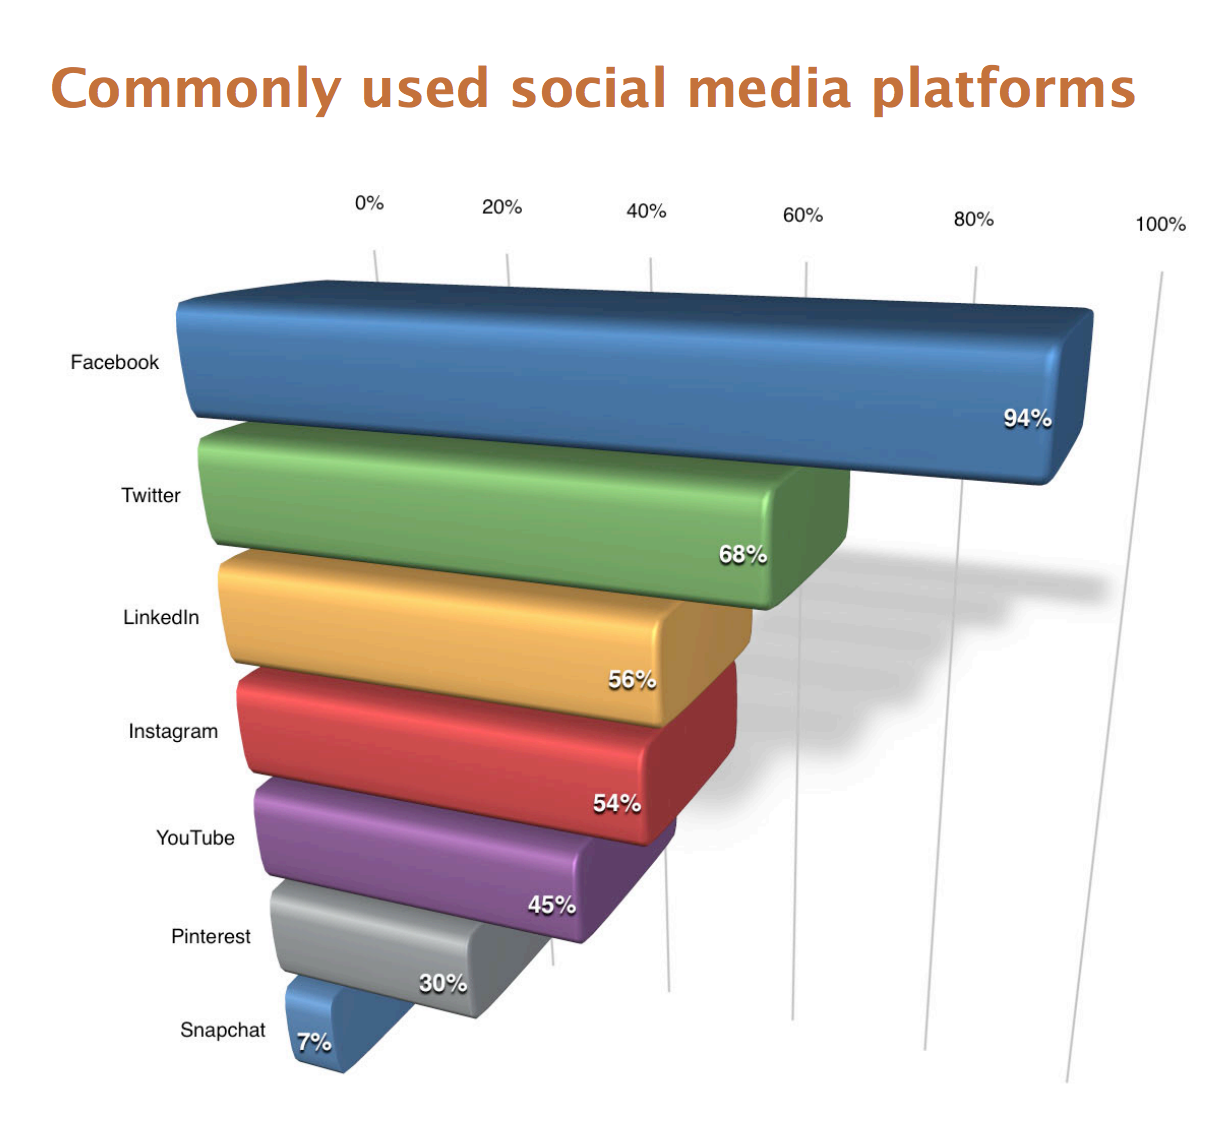 94% of social marketers use Facebook.